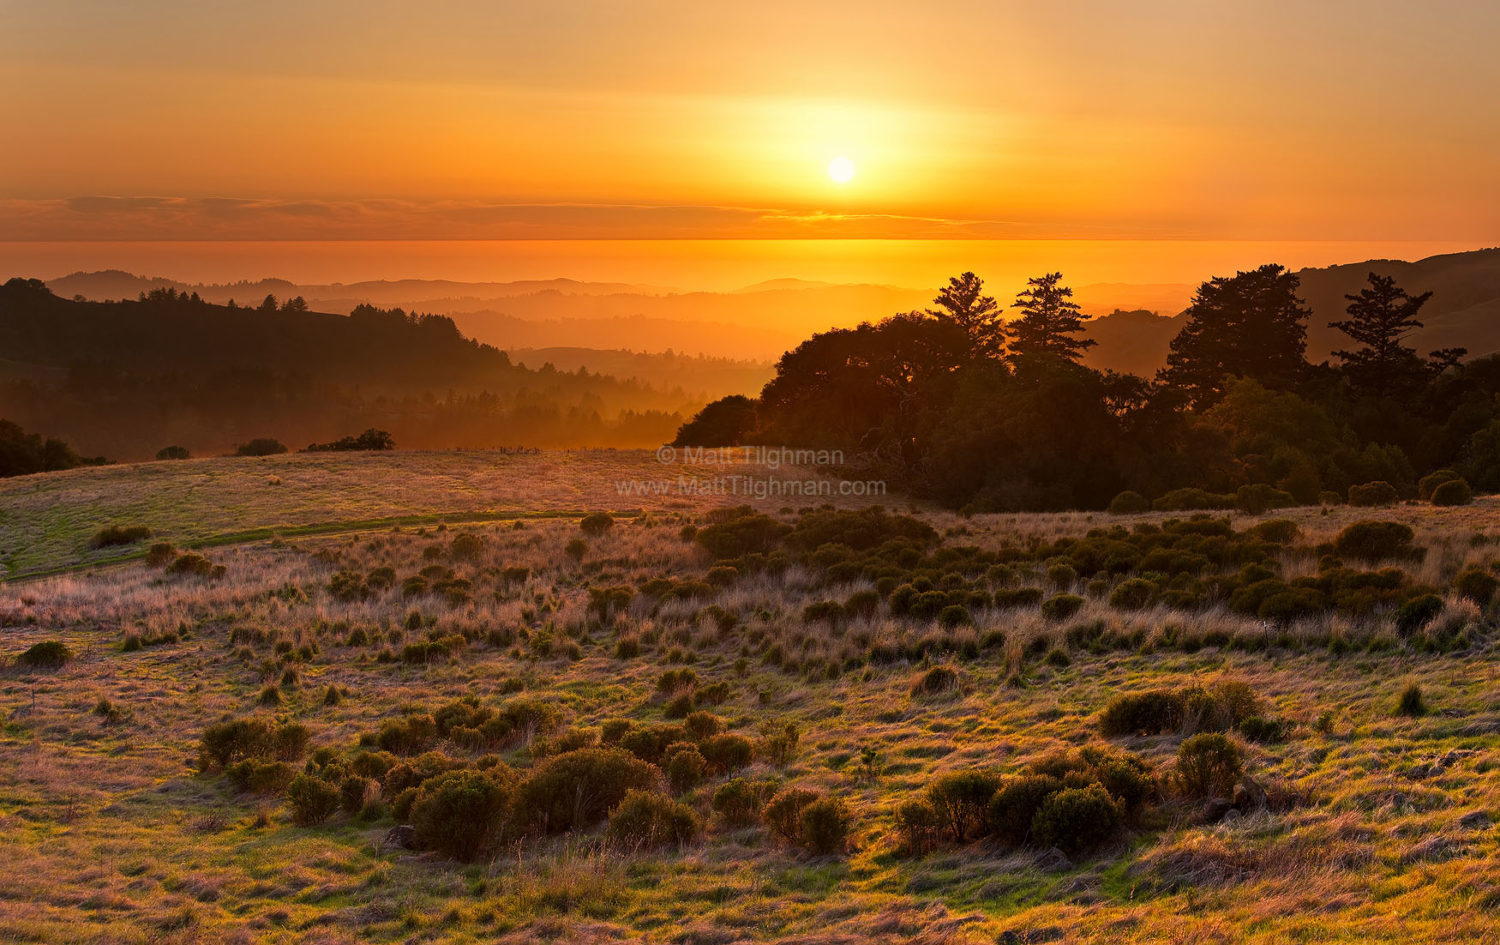 Fine art stock landscape photograph from Russian Ridge California. A beautiful sunset in the Santa Cruz Mountains, with a rare fogless Pacific Ocean beyond